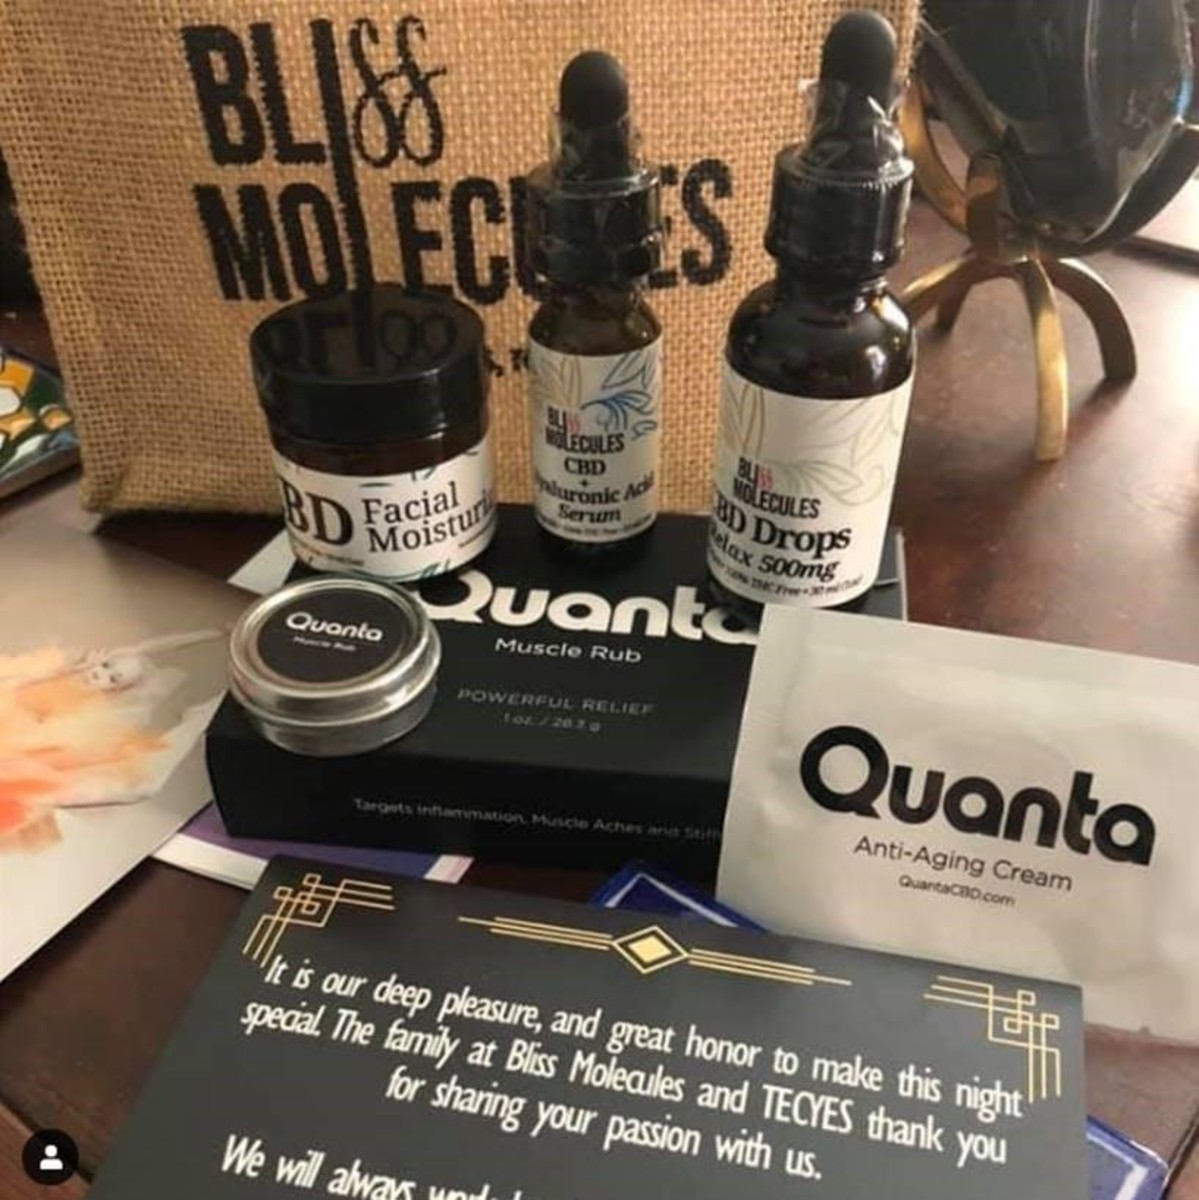 Bliss Molecules & Quanta CBD gift bag